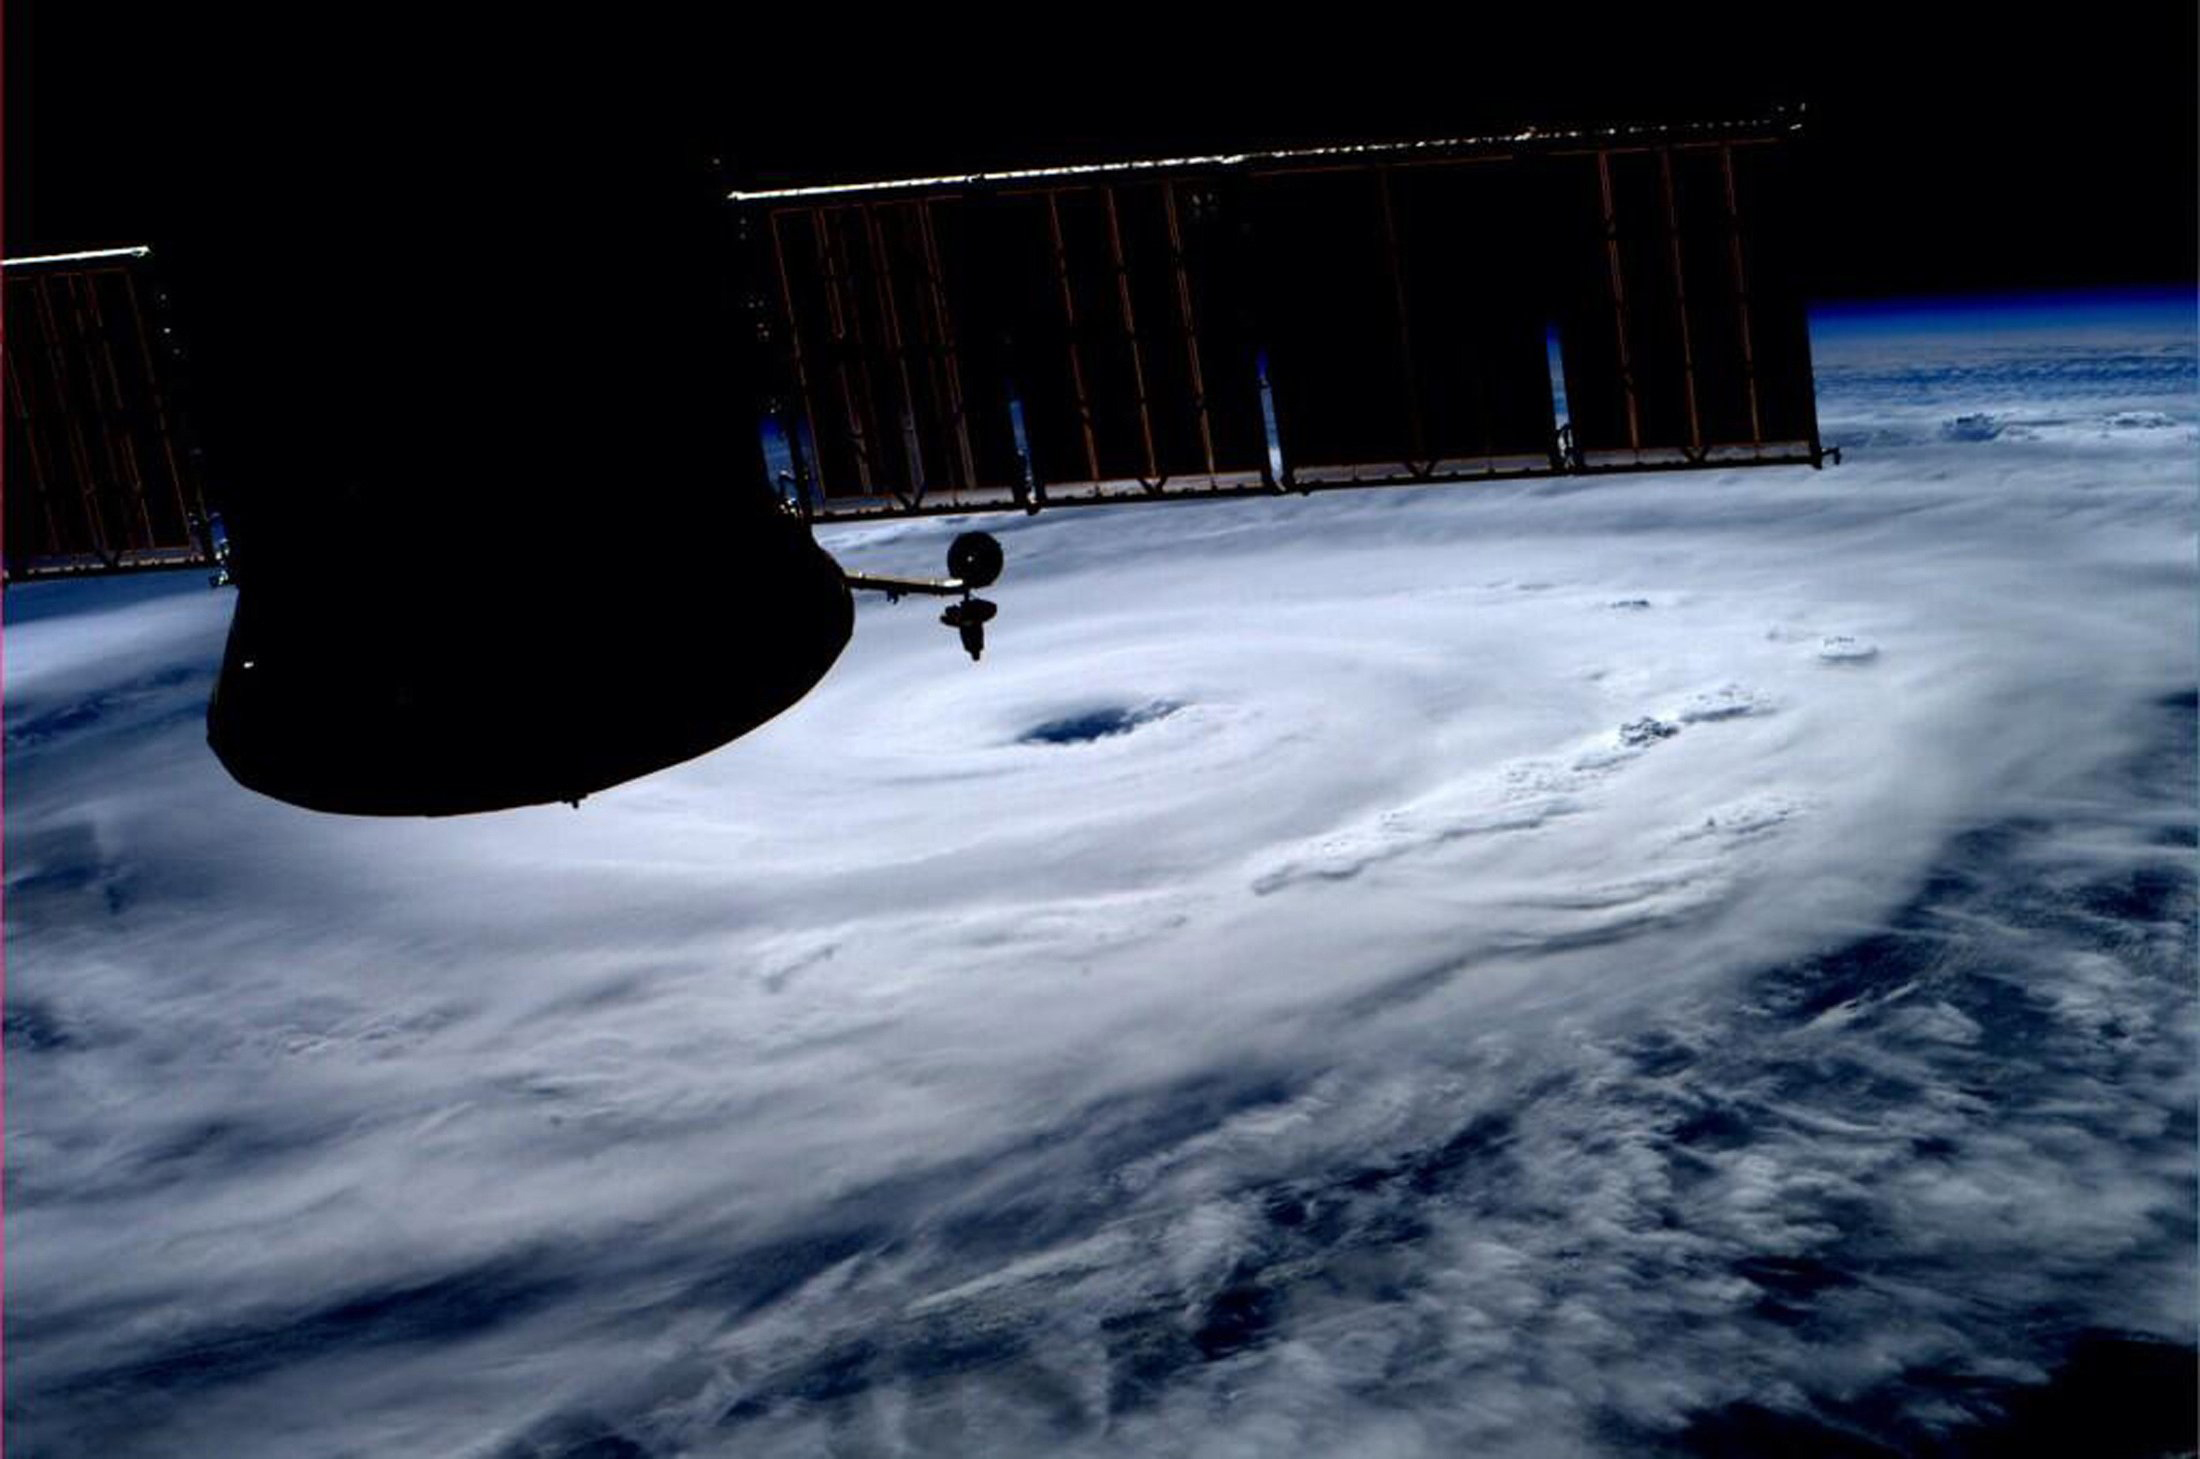 The eye of Hurricane Arthur is seen over the Atlantic in this photo from the International Space Station tweeted by European Space Agency astronaut Alexander Gerst, July 3, 2014.